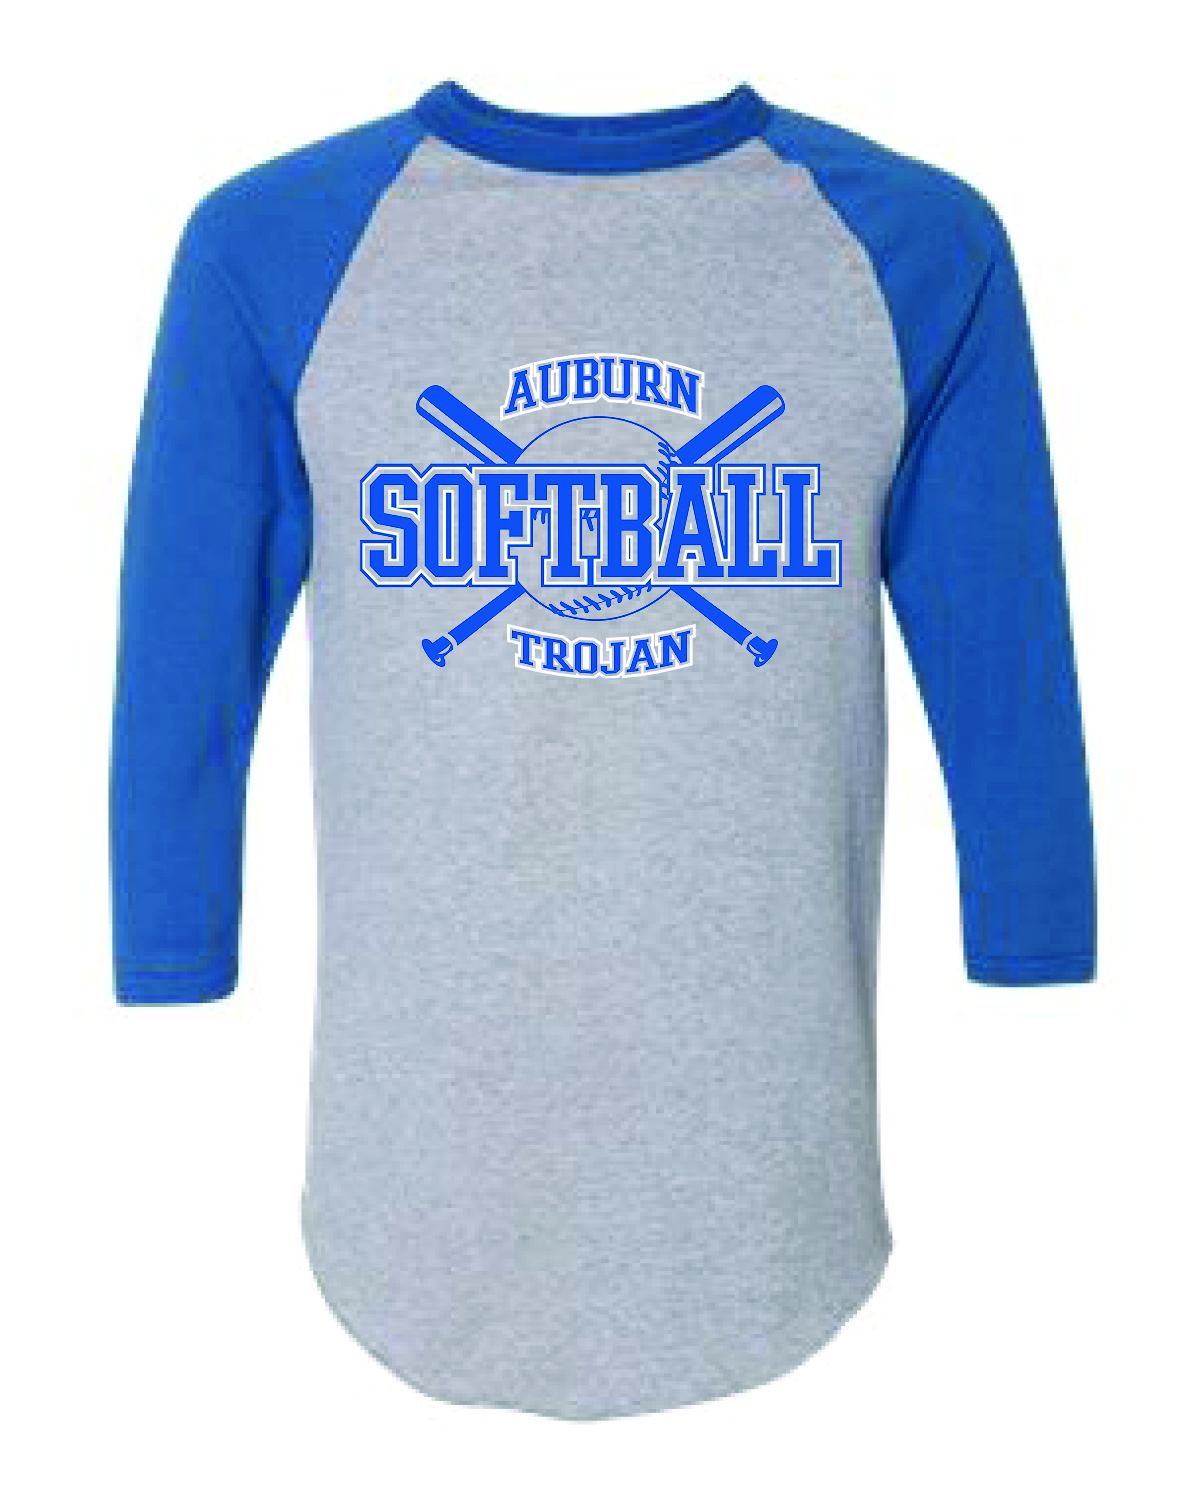 AUBURN SPIRIT WEAR - SOFTBALL Orders due in by 5:00 on August 16th